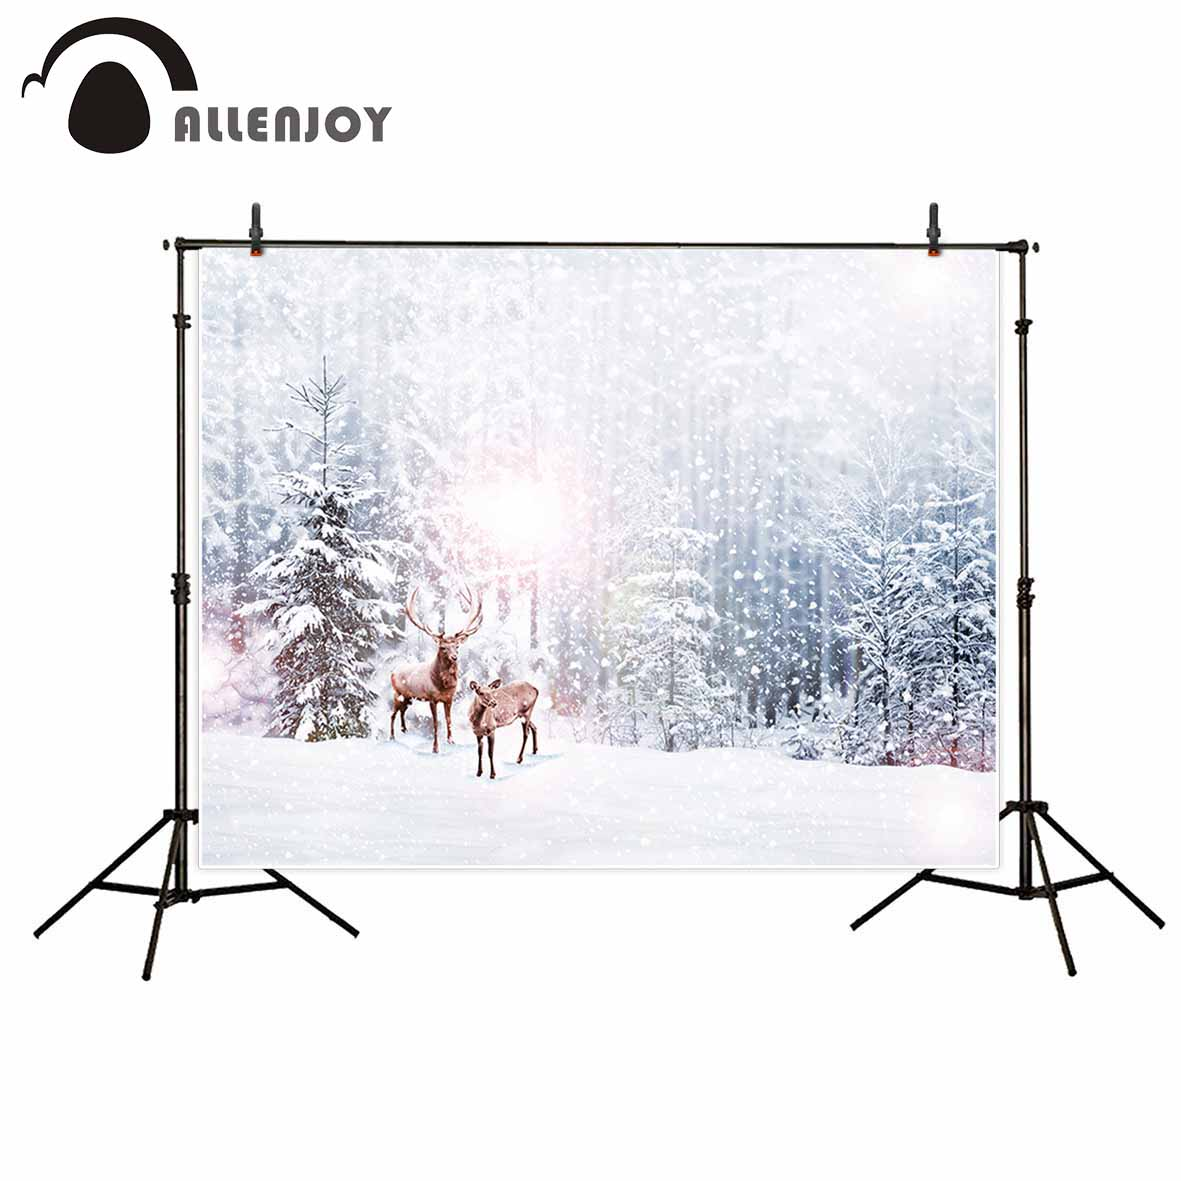 Allenjoy Winter background forest pine elk snow photography backdrops christmas decorations new backdrops photo studio панель lg 98ls95d 98 черный [98ls95d b]